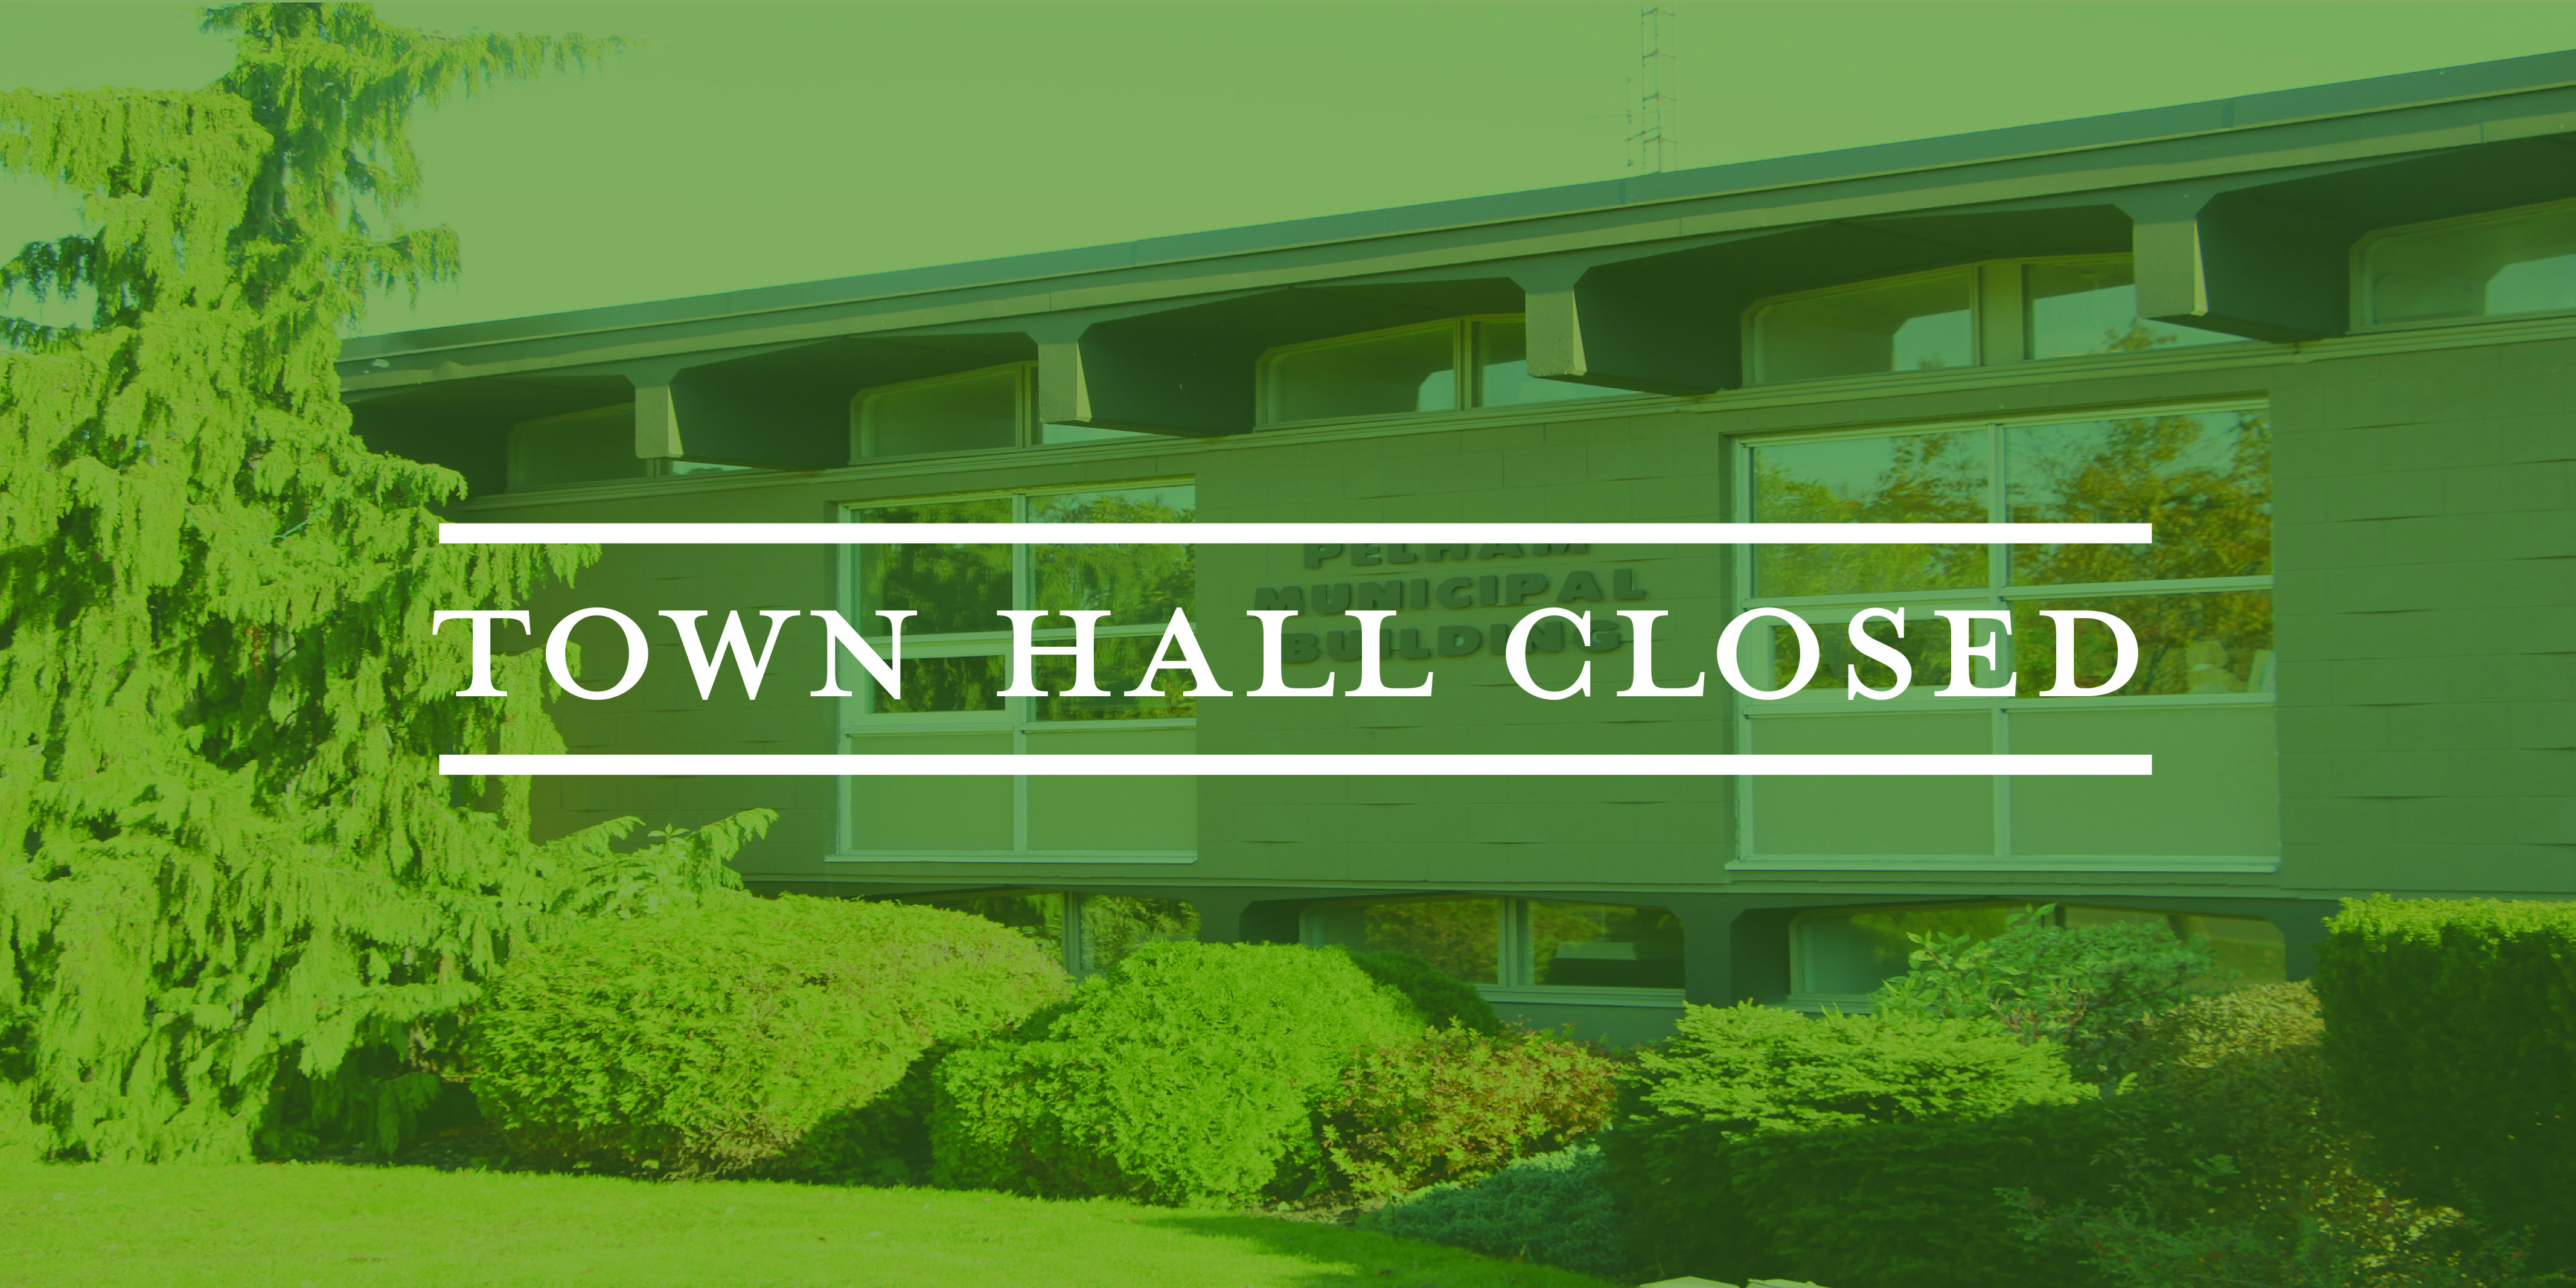 town hall closed text on green background